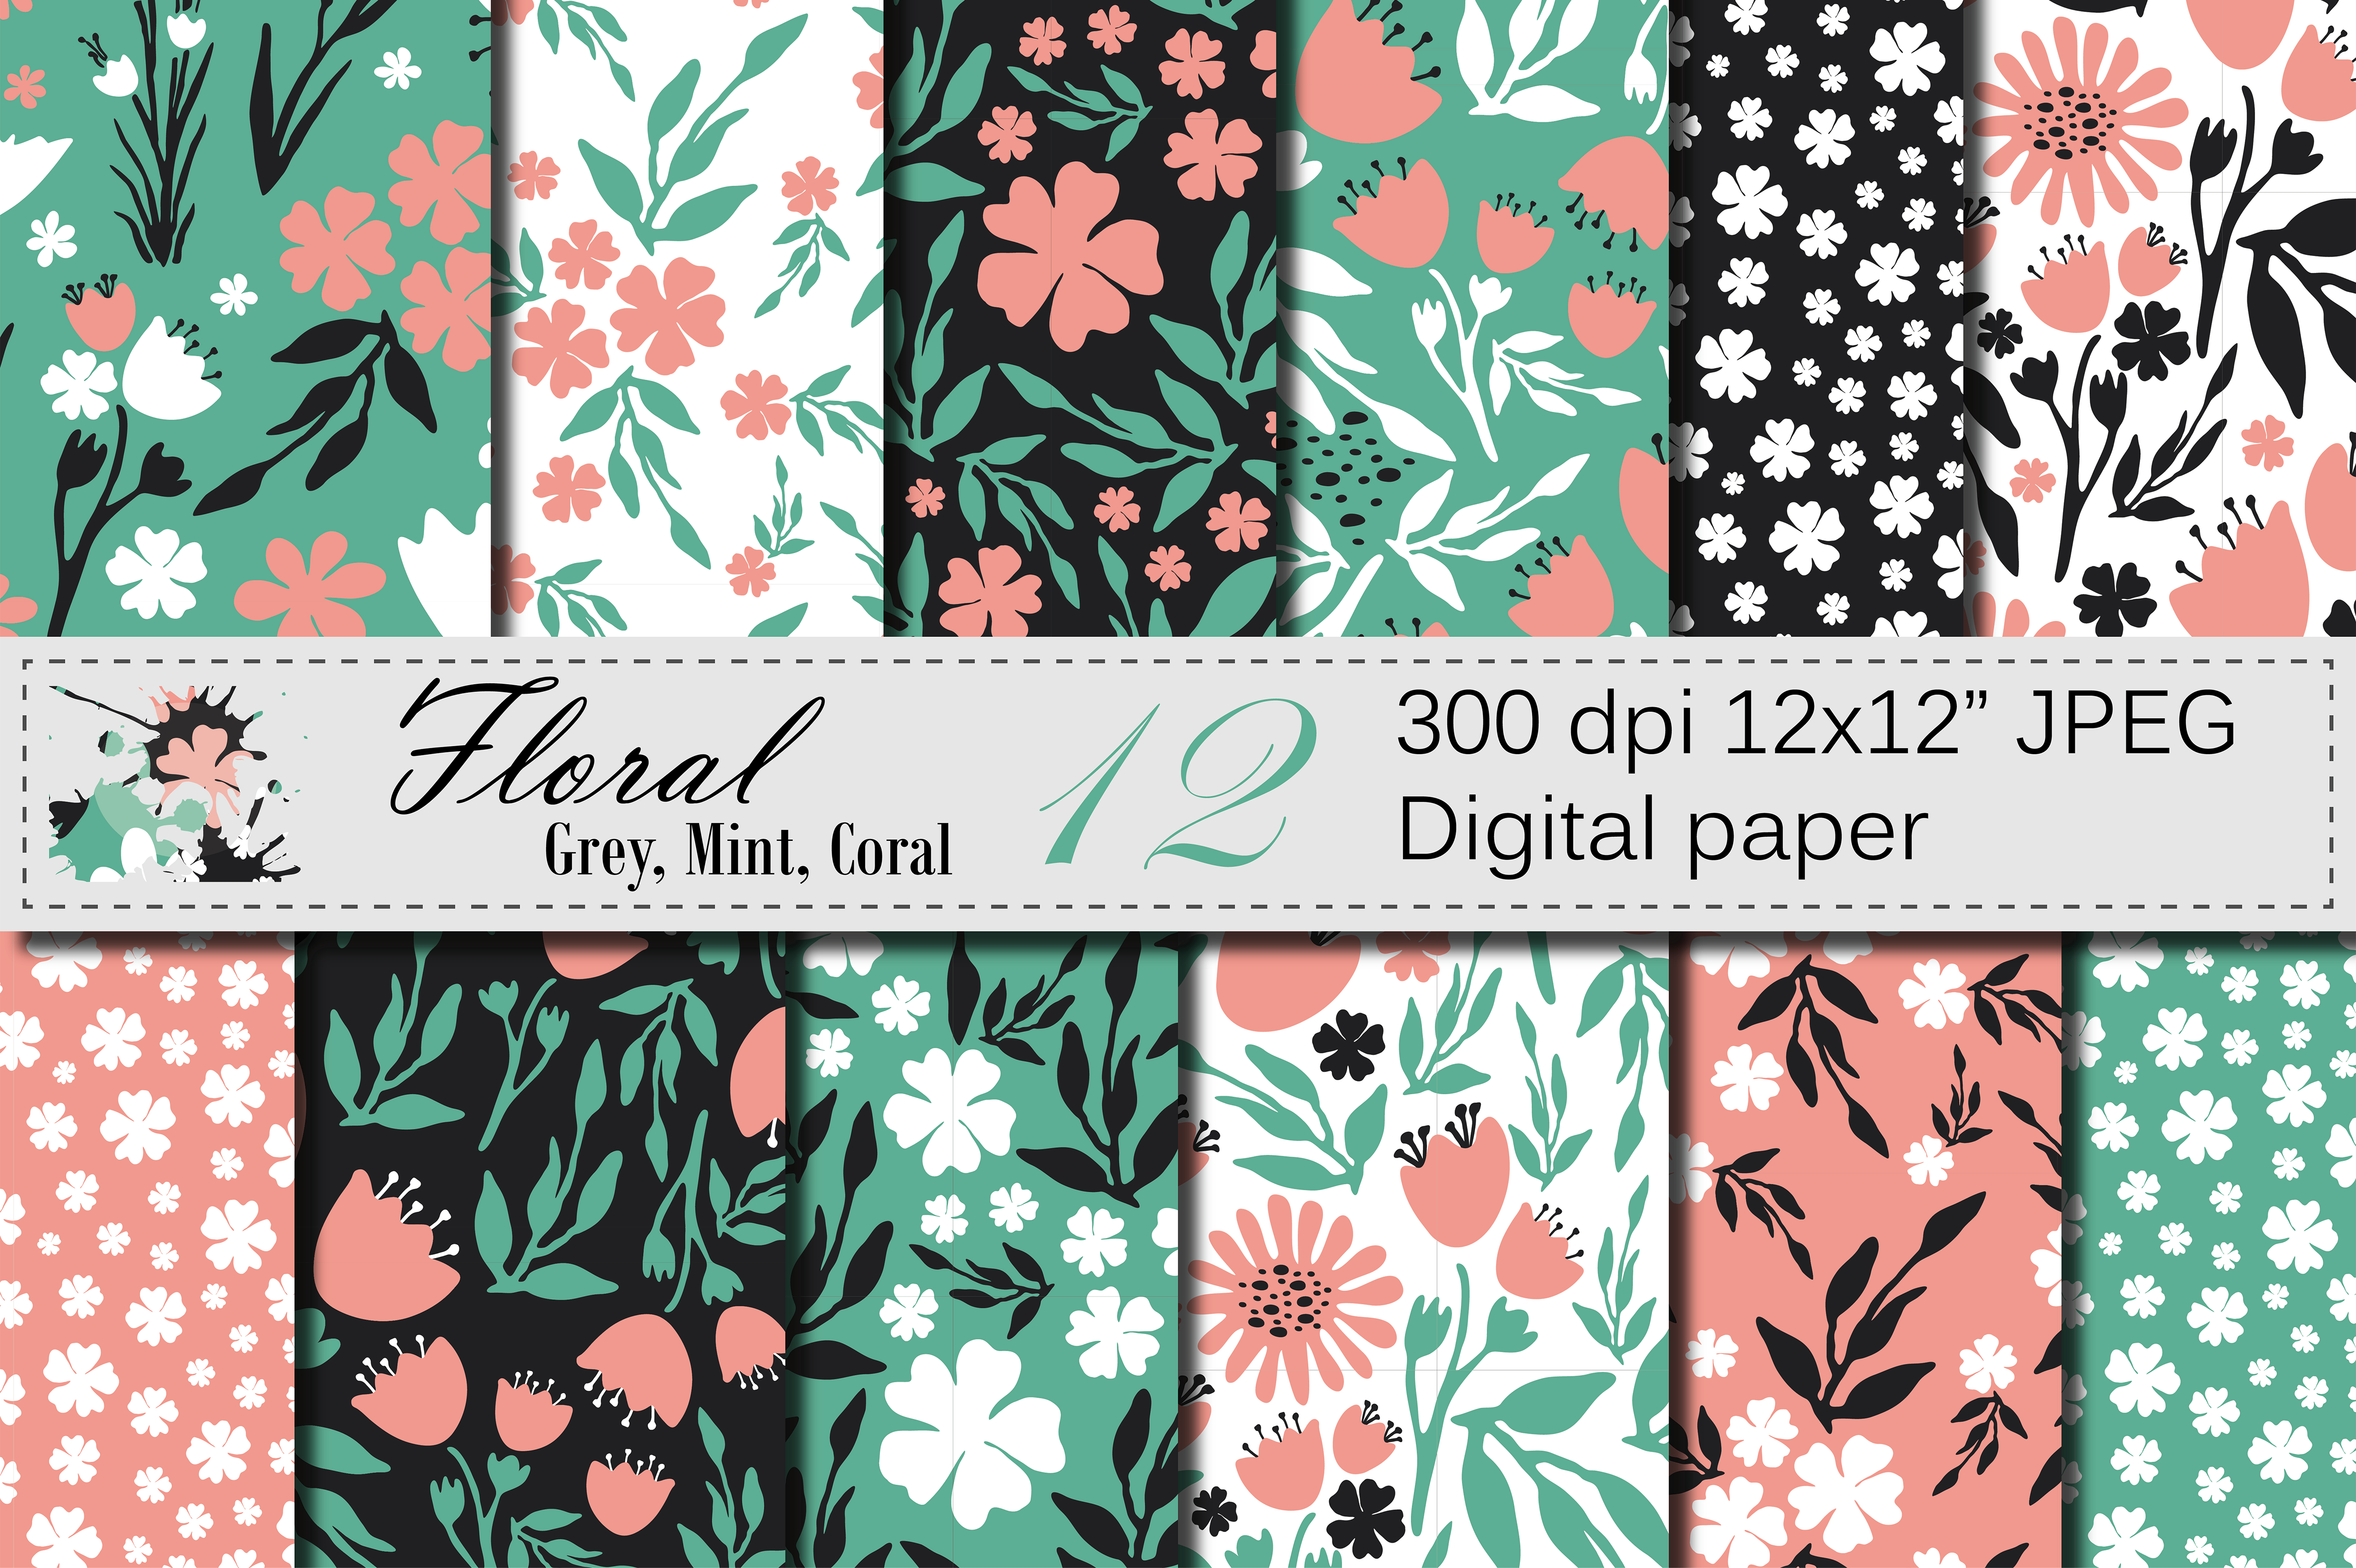 Seamless Floral Digital Paper - Gray Mint Coral Patterns Graphic Patterns By VR Digital Design